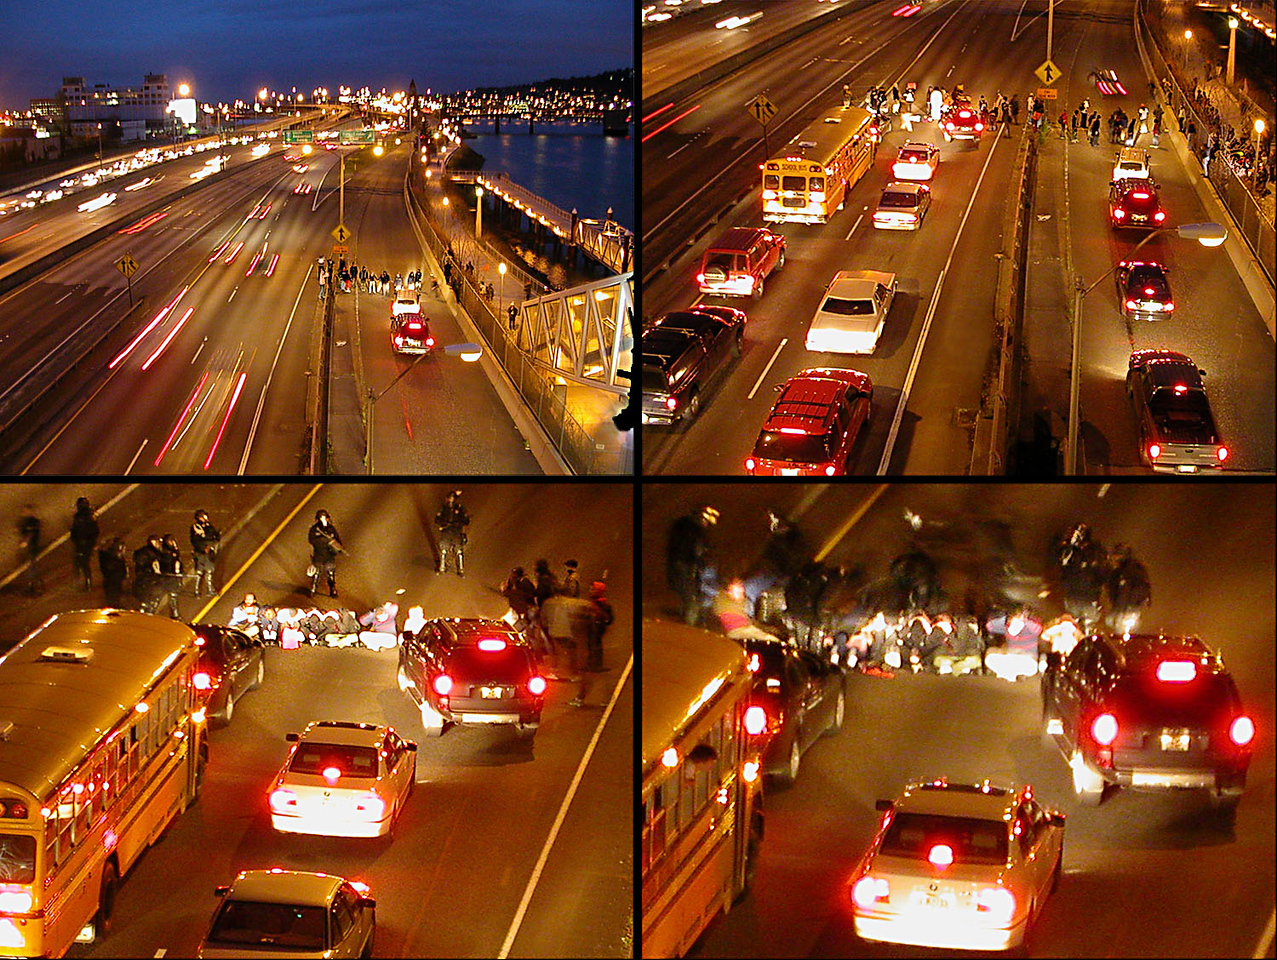 "<b>Appendix  This photo was added at the request of Andy who was one of the individuals taking part in the protest that took place on i-5 the night following our invasion of Iraq. That action was called  ""When the bombs drop, Portland stops."" Traffic was temporarily stopped on all the freeways that slice through downtown Portland. Burnside, the city's major blvd. was closed the entire night."